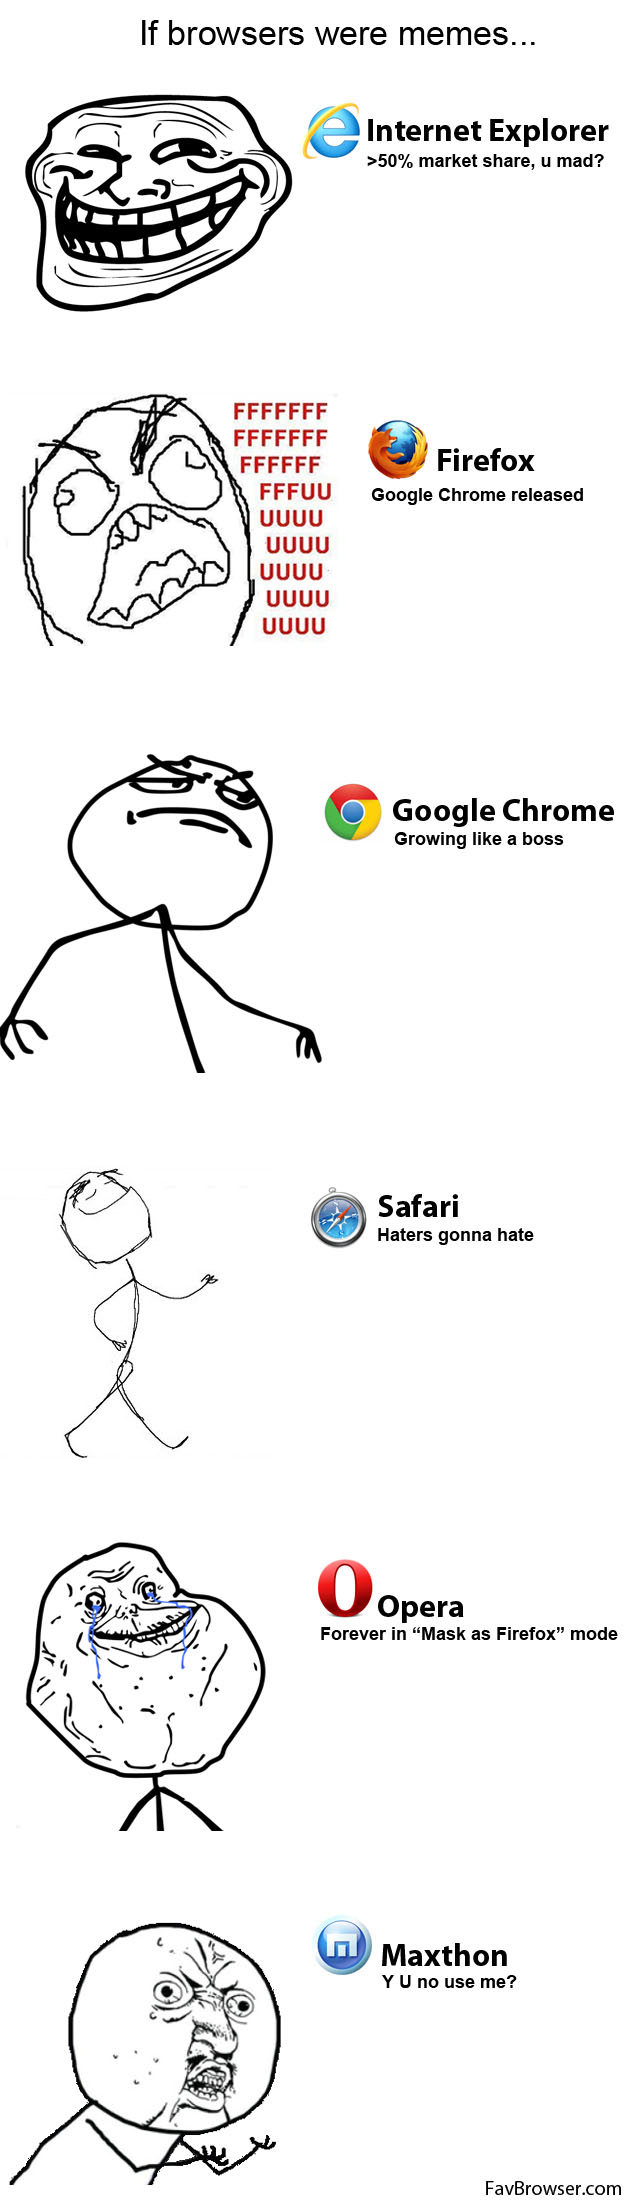 If Browsers Were Memes